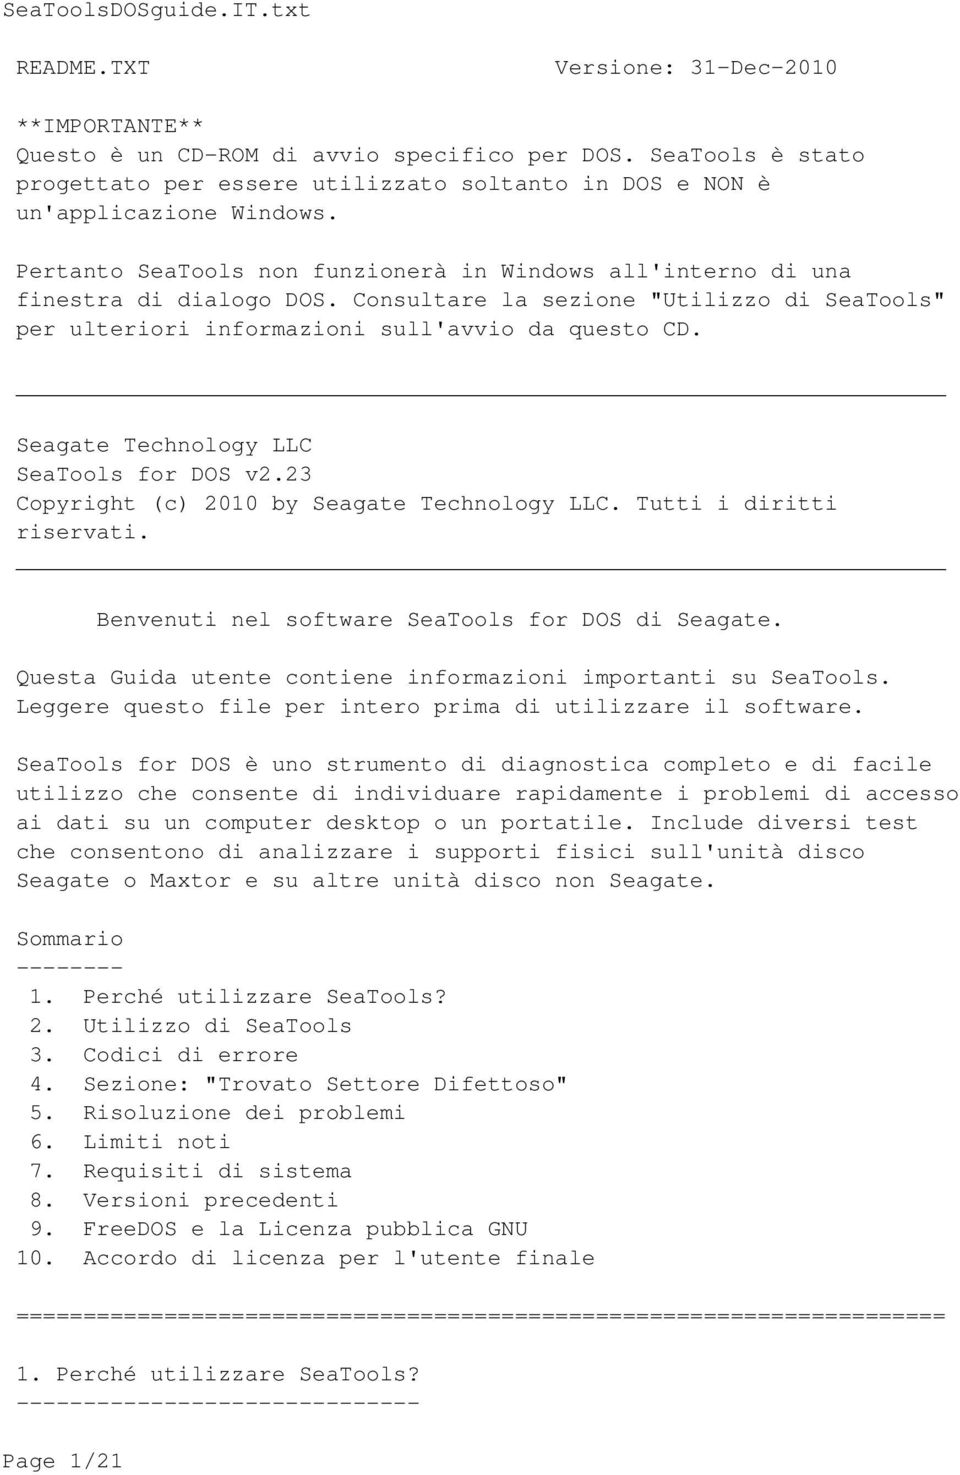 Seagate Technology LLC SeaTools for DOS v2.23 Copyright (c) 2010 by Seagate Technology LLC. Tutti i diritti riservati. Benvenuti nel software SeaTools for DOS di Seagate.